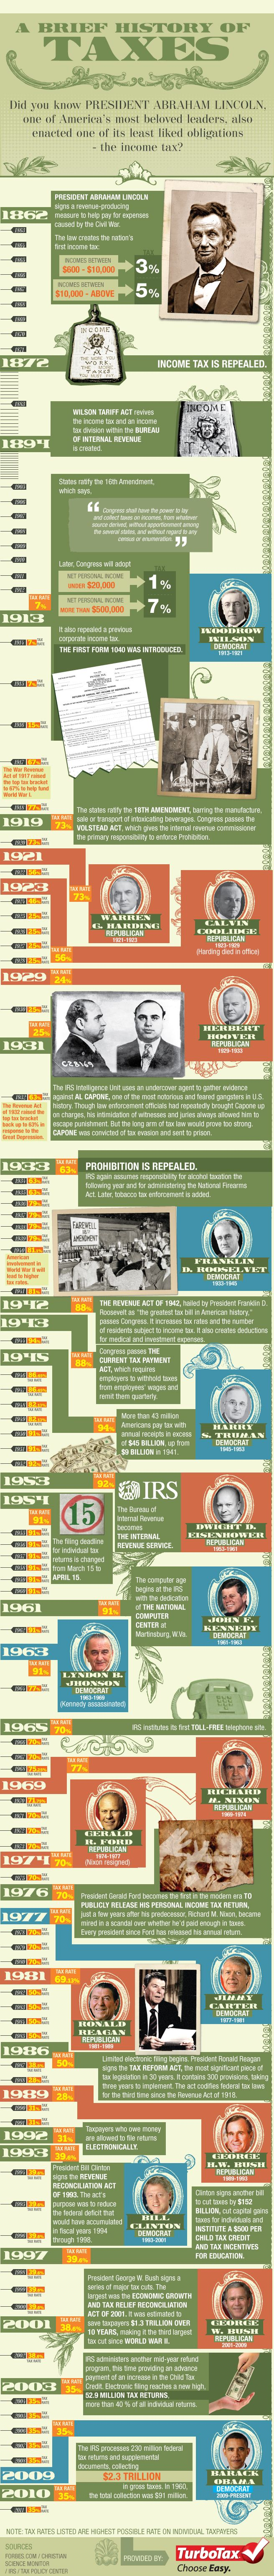 A Brief History of Income Taxes